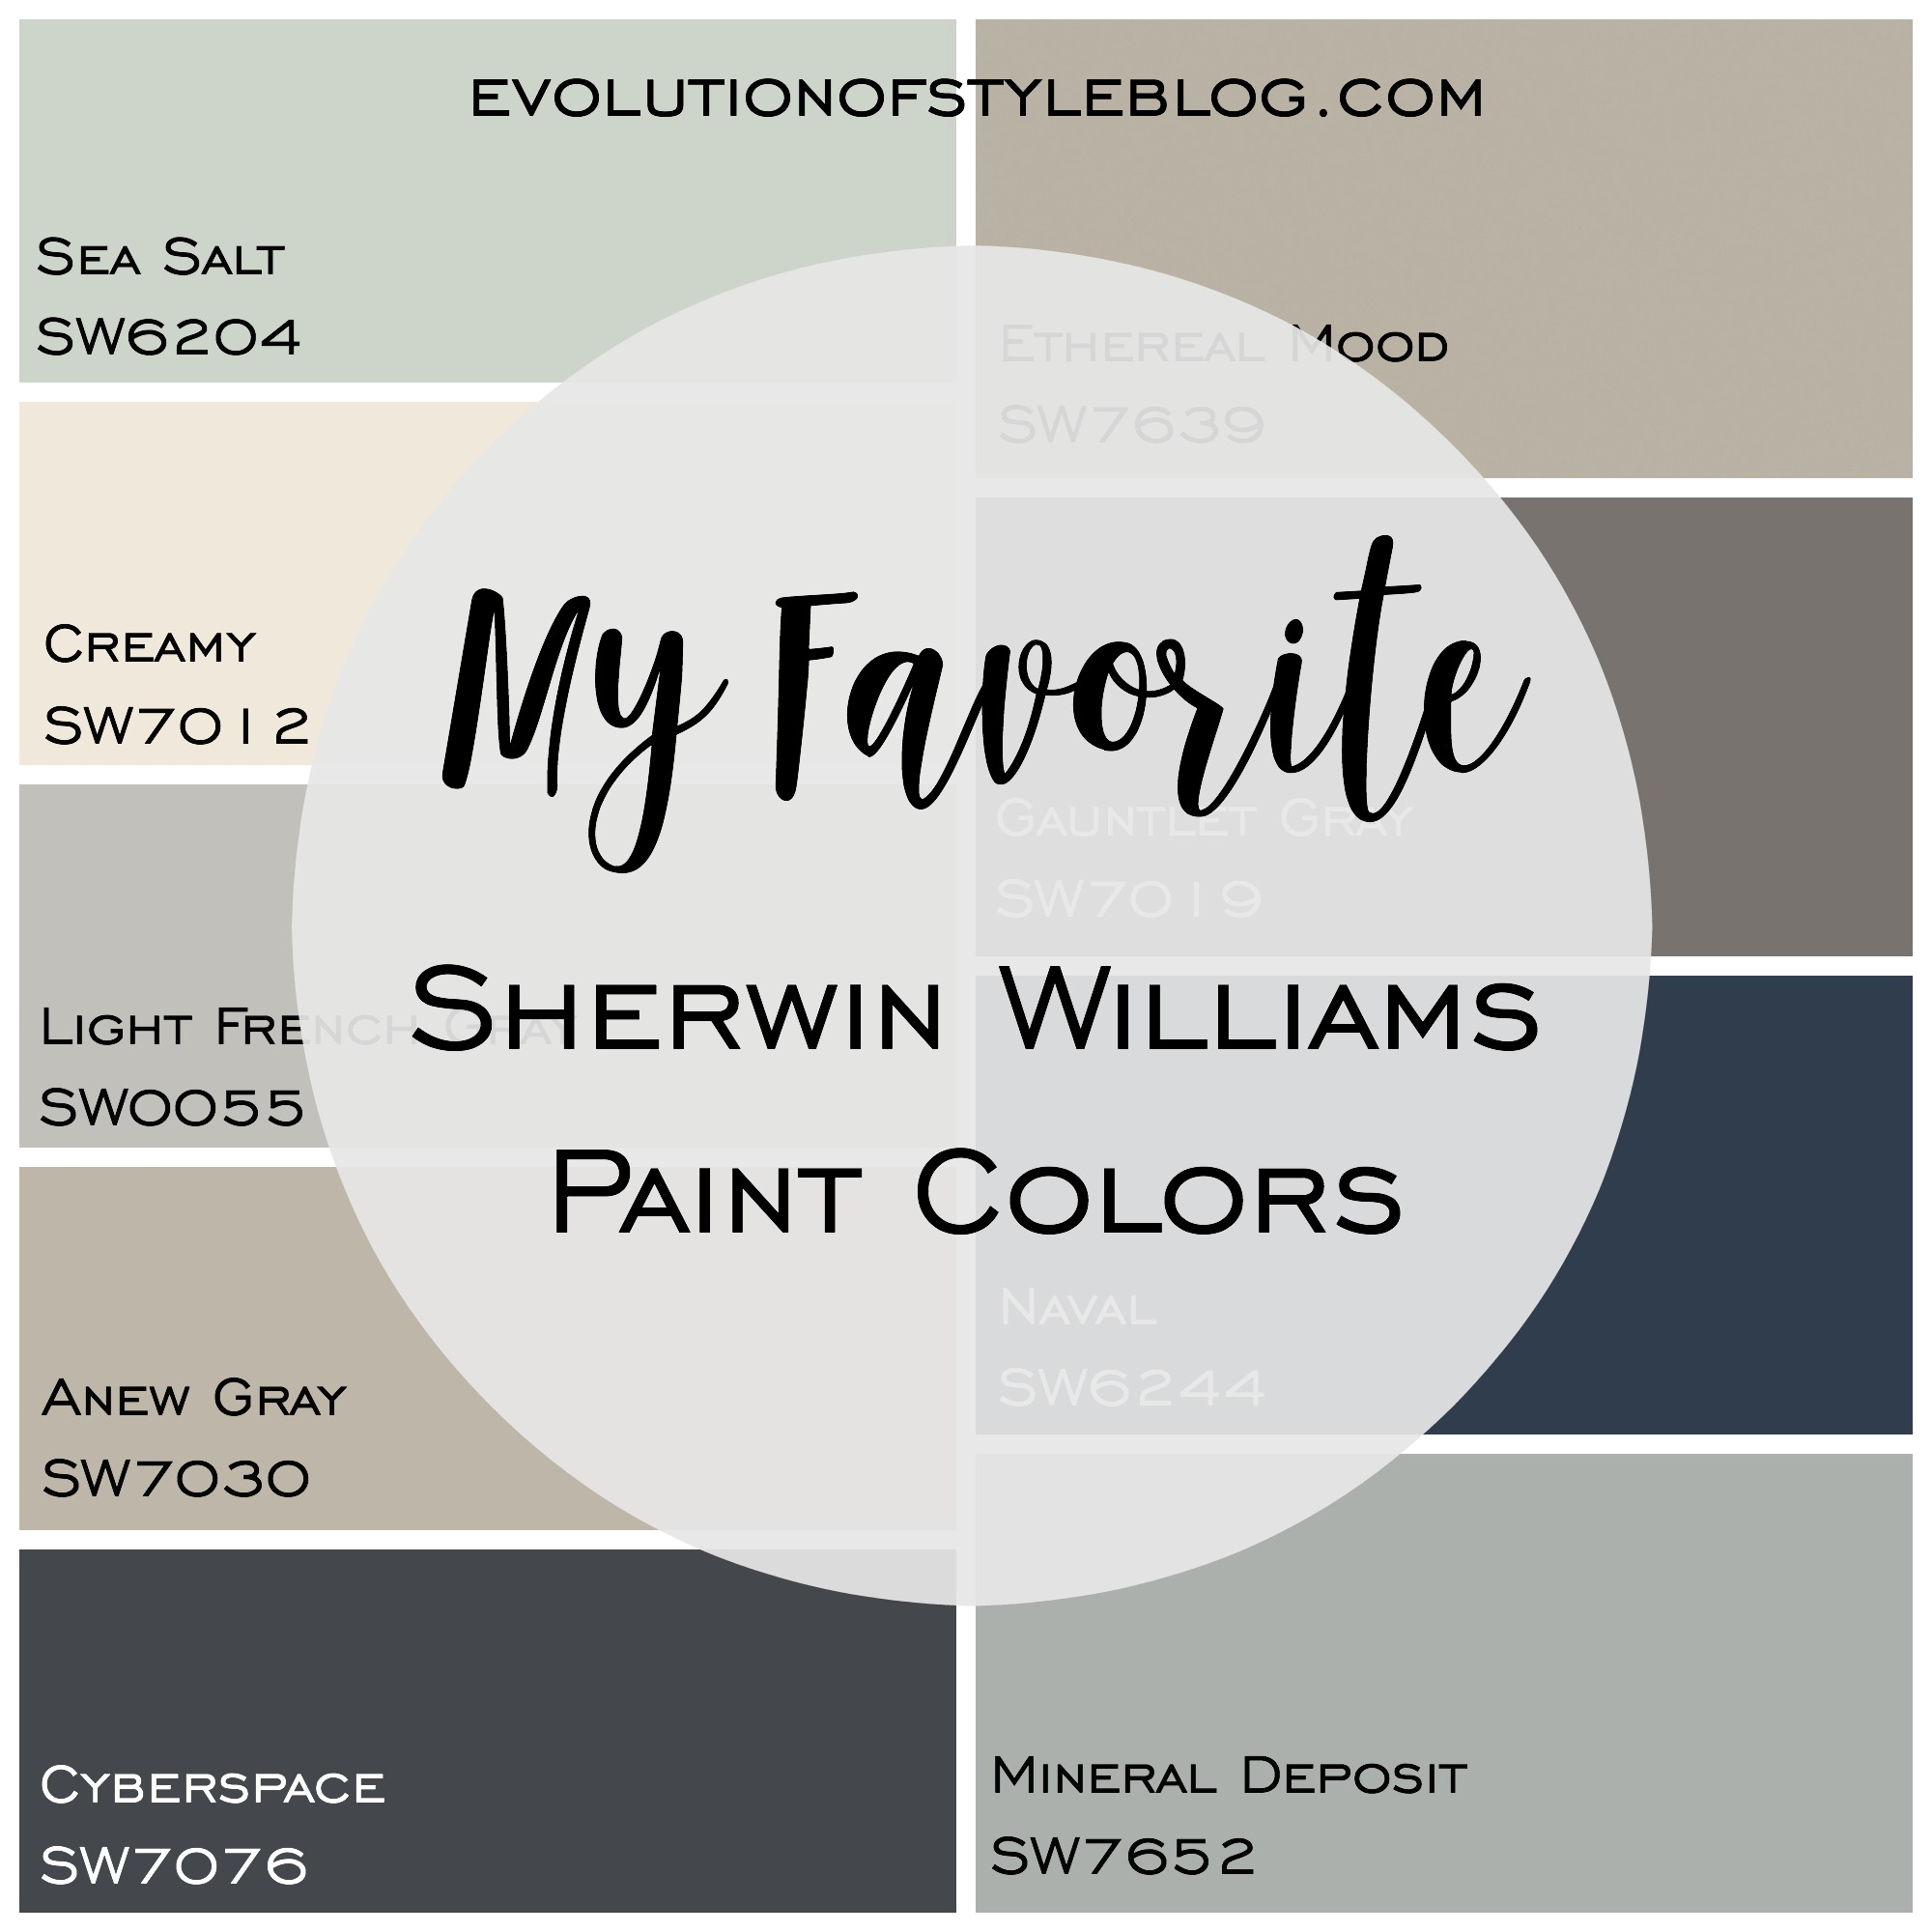 My Favorite Sherwin Williams Paint Colors   Evolution of Style